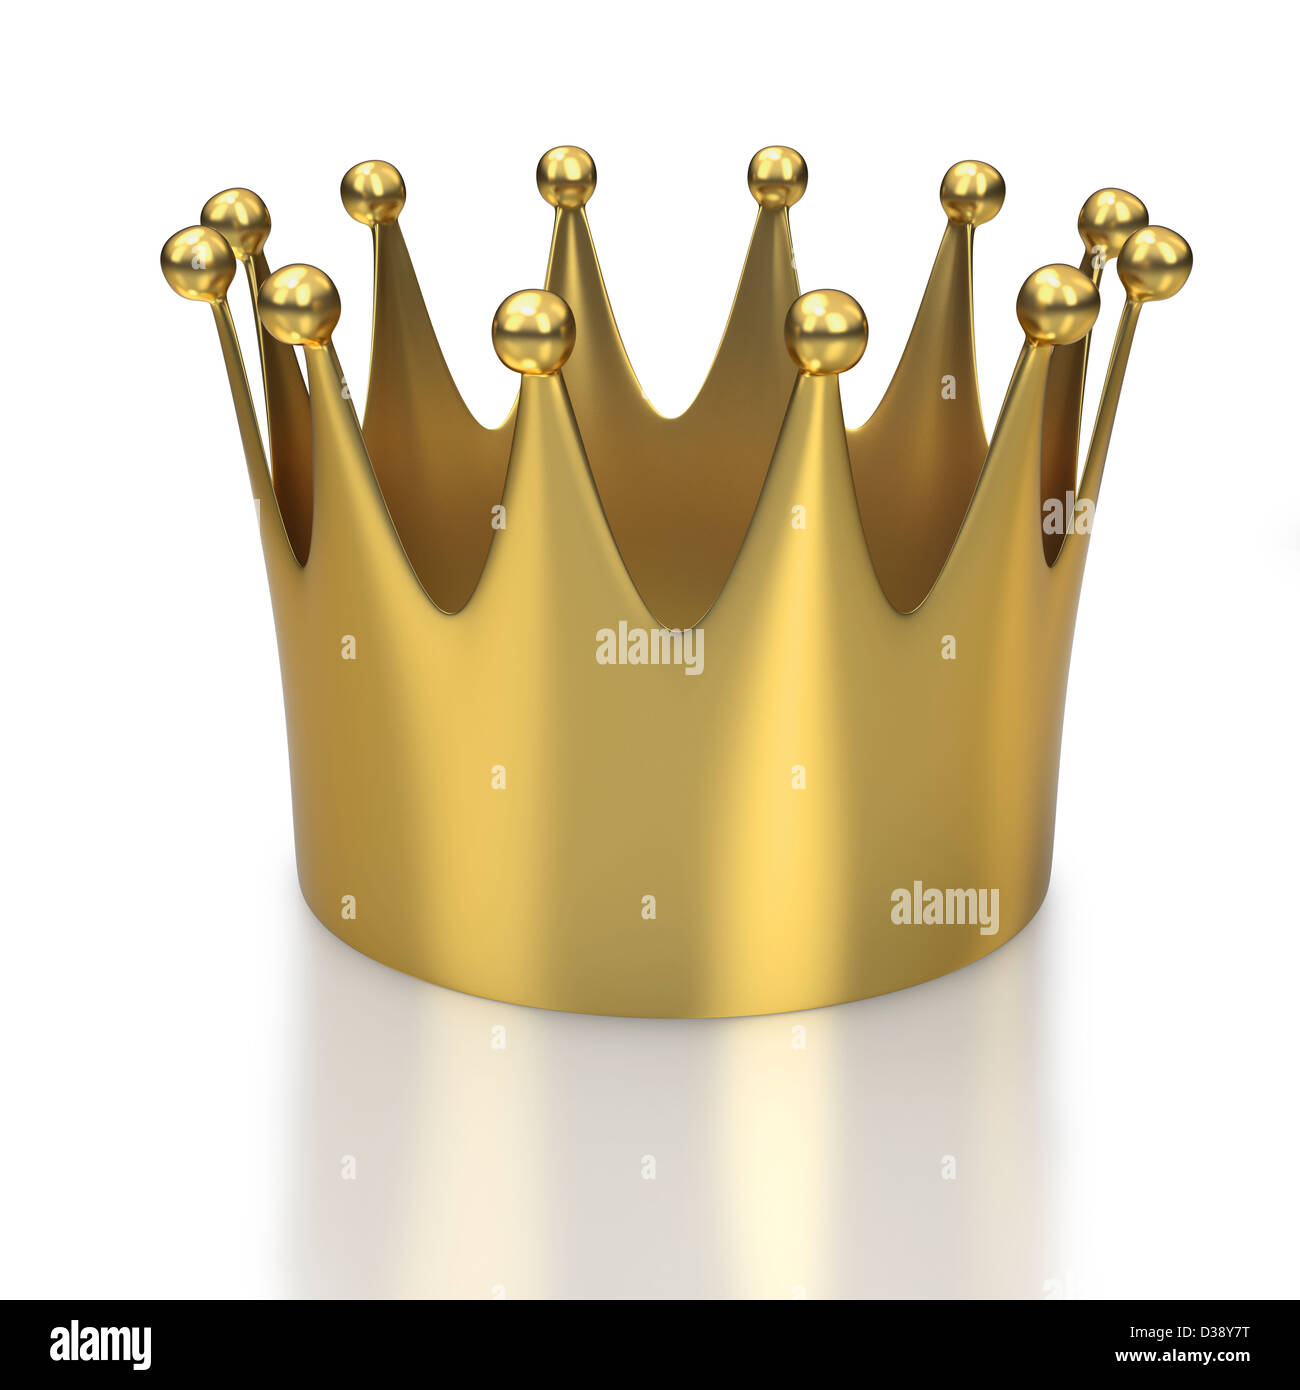 Large golden crown or coronet on white background - Stock Image